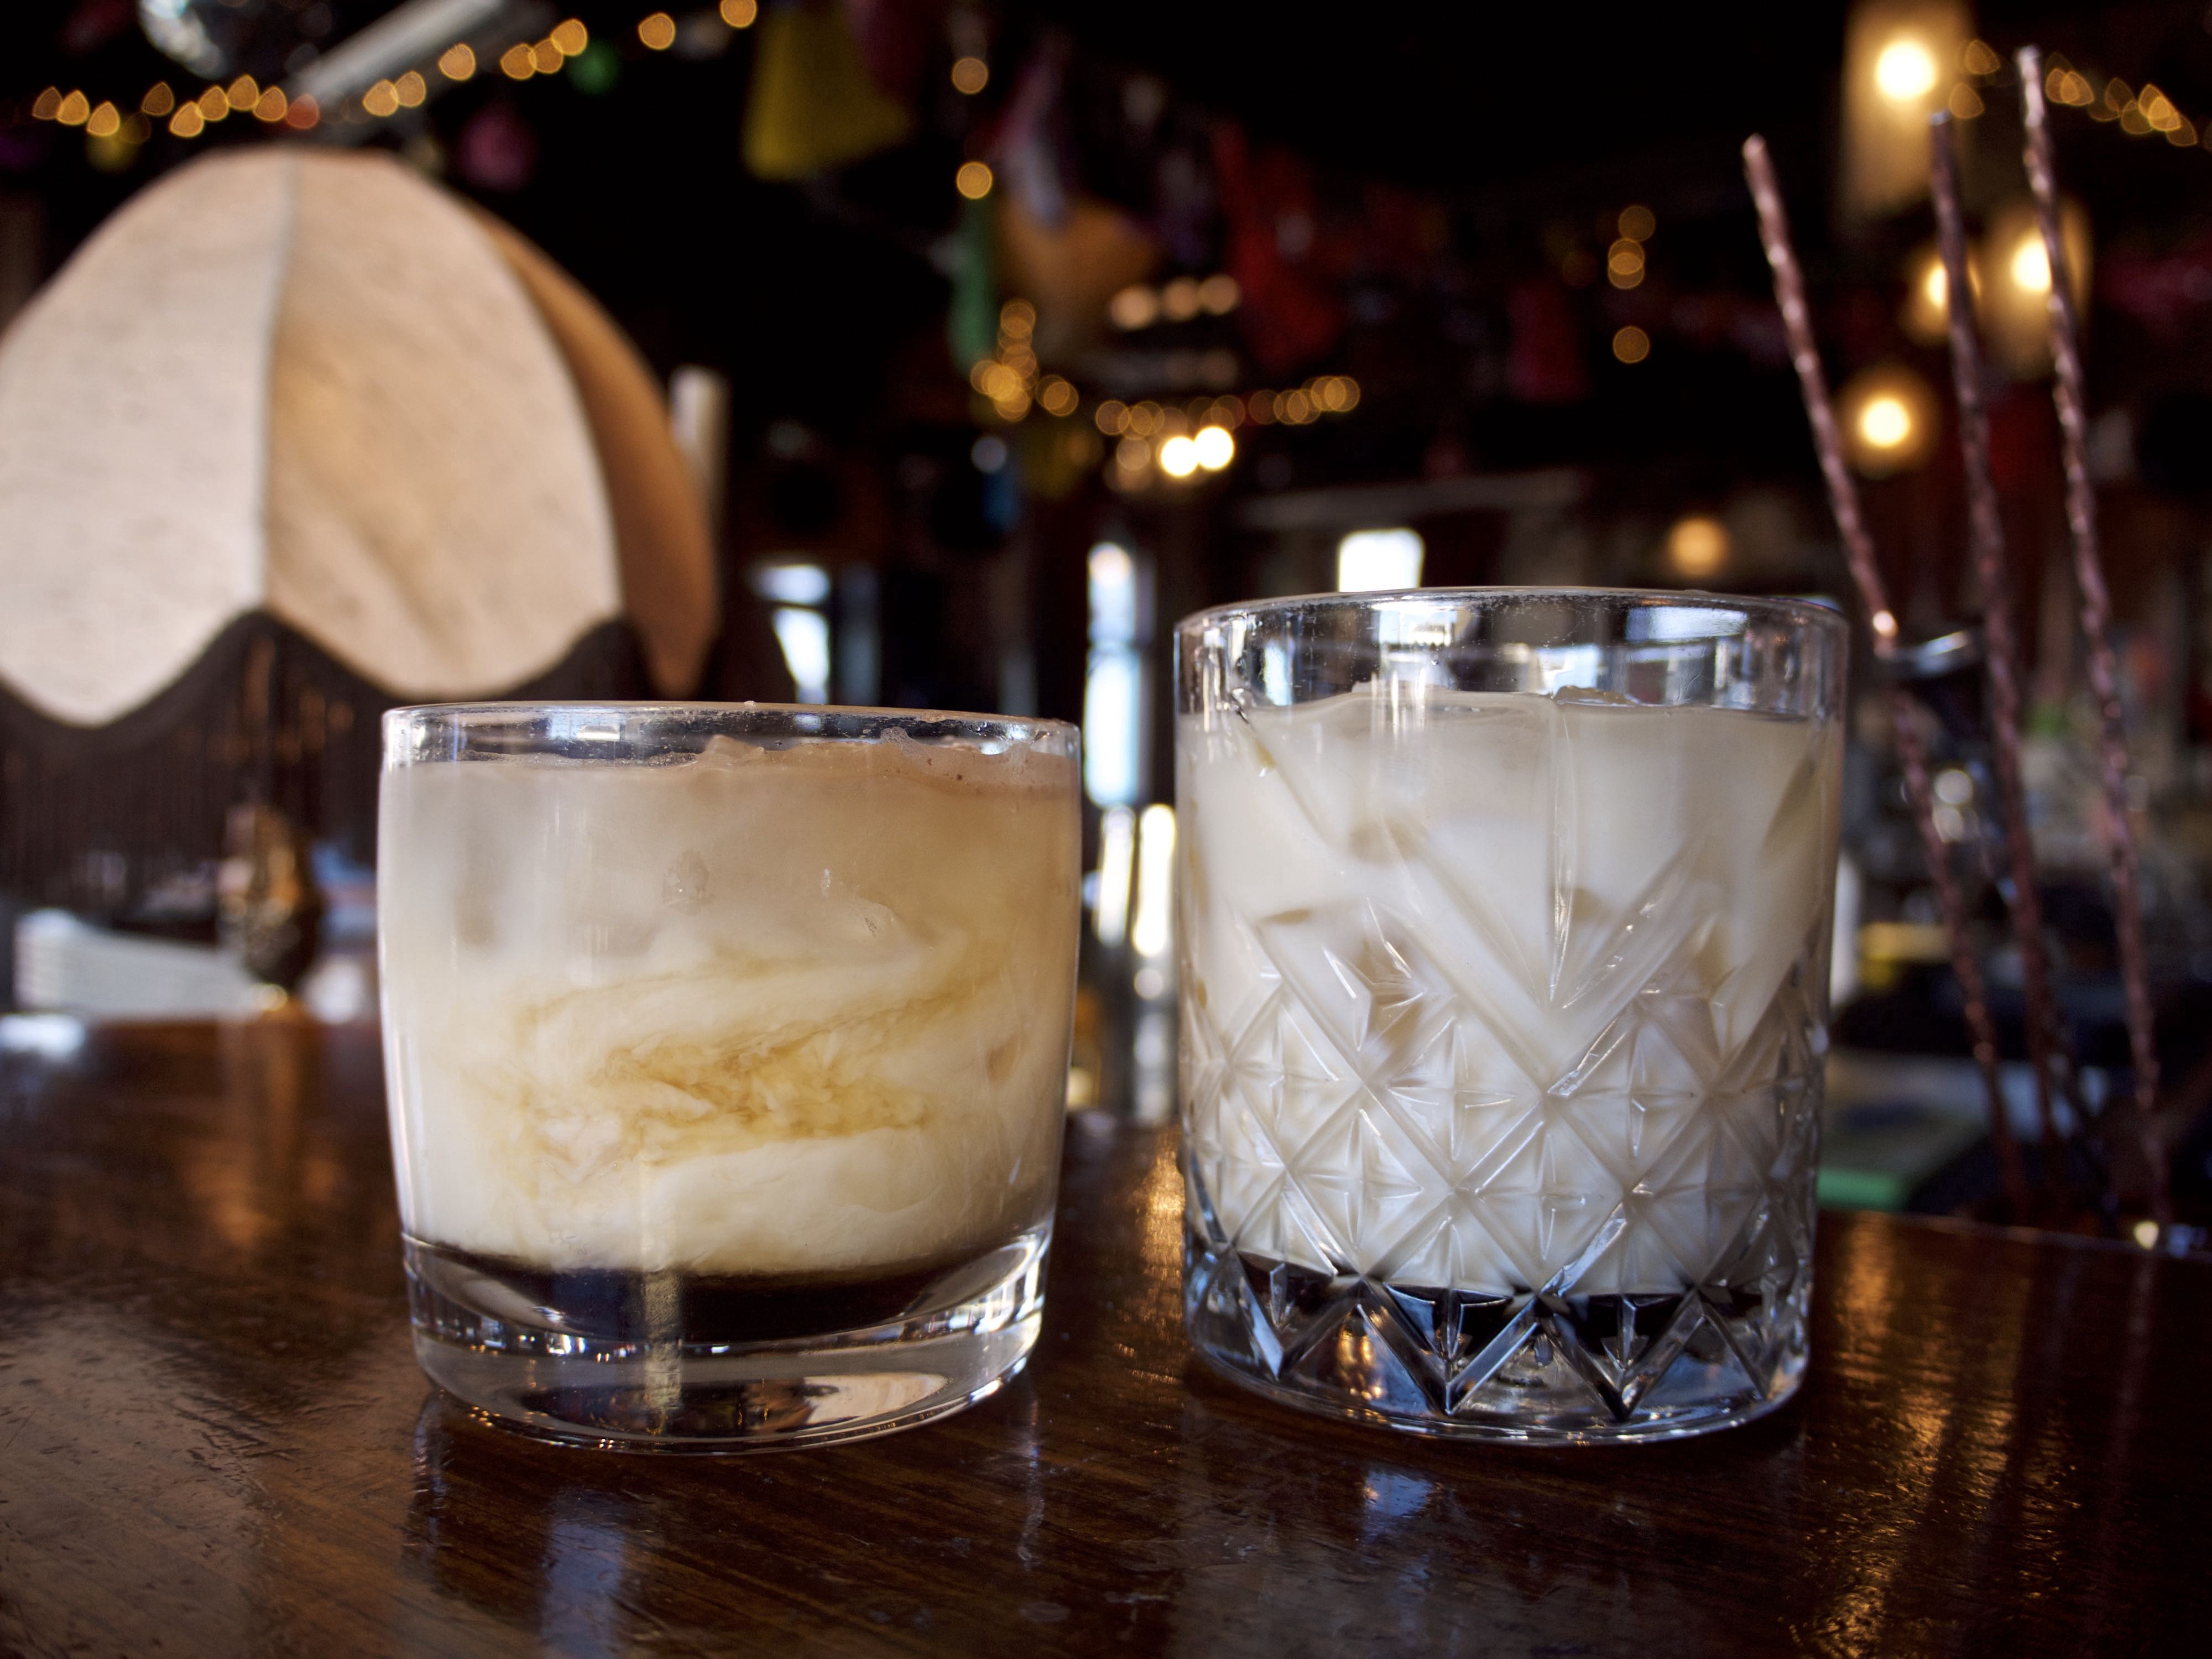 Two White Russians in short glasses on a table in a bar.